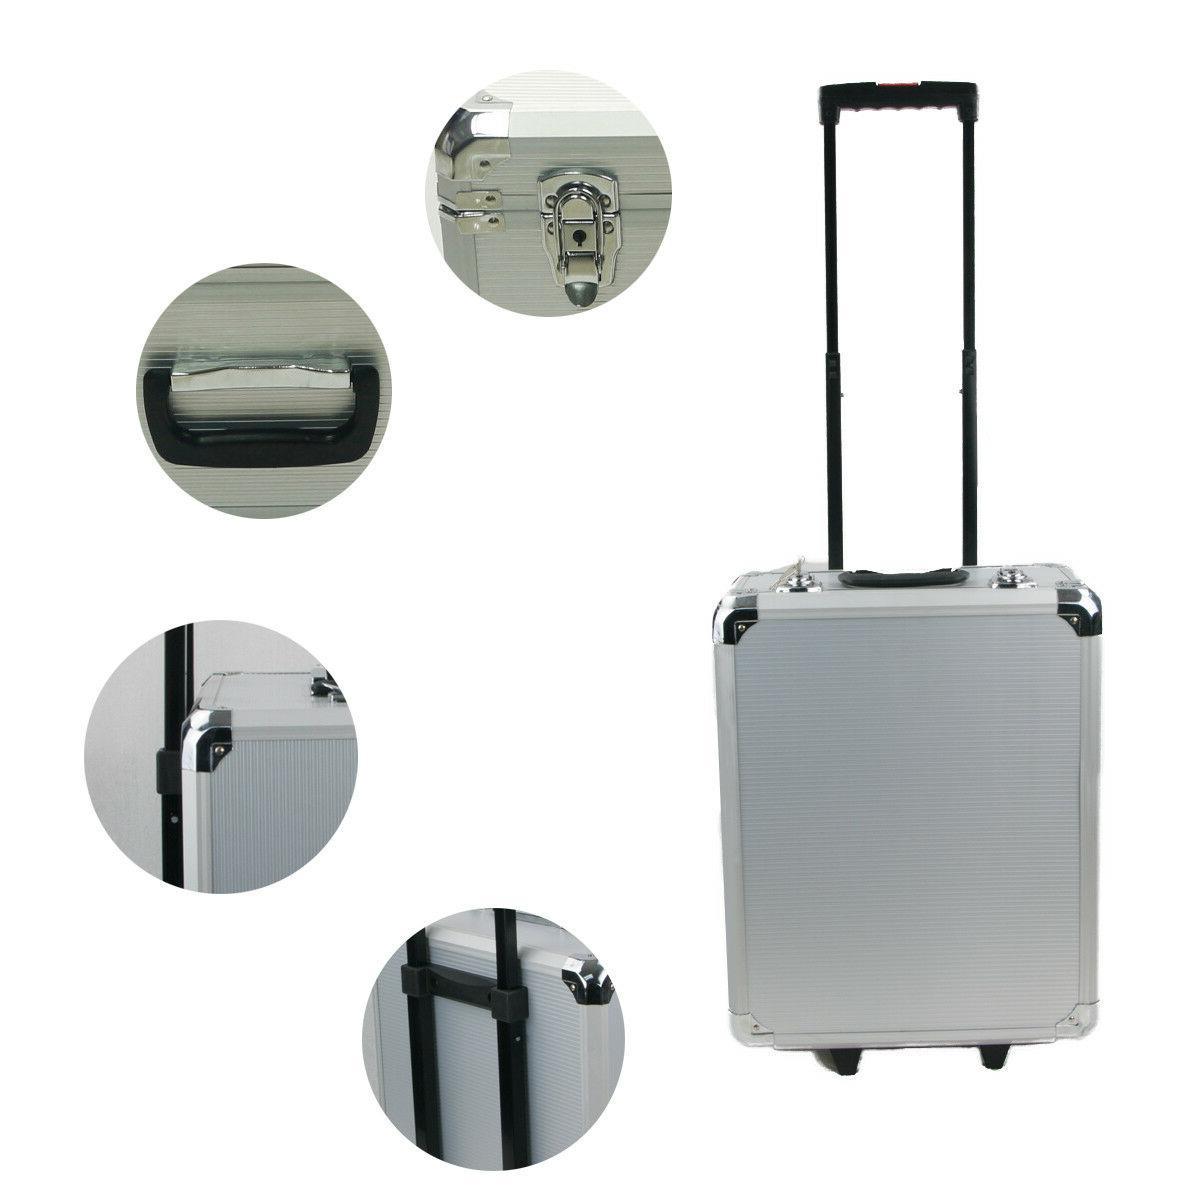 999 pcs Tool Standard with Trolley +